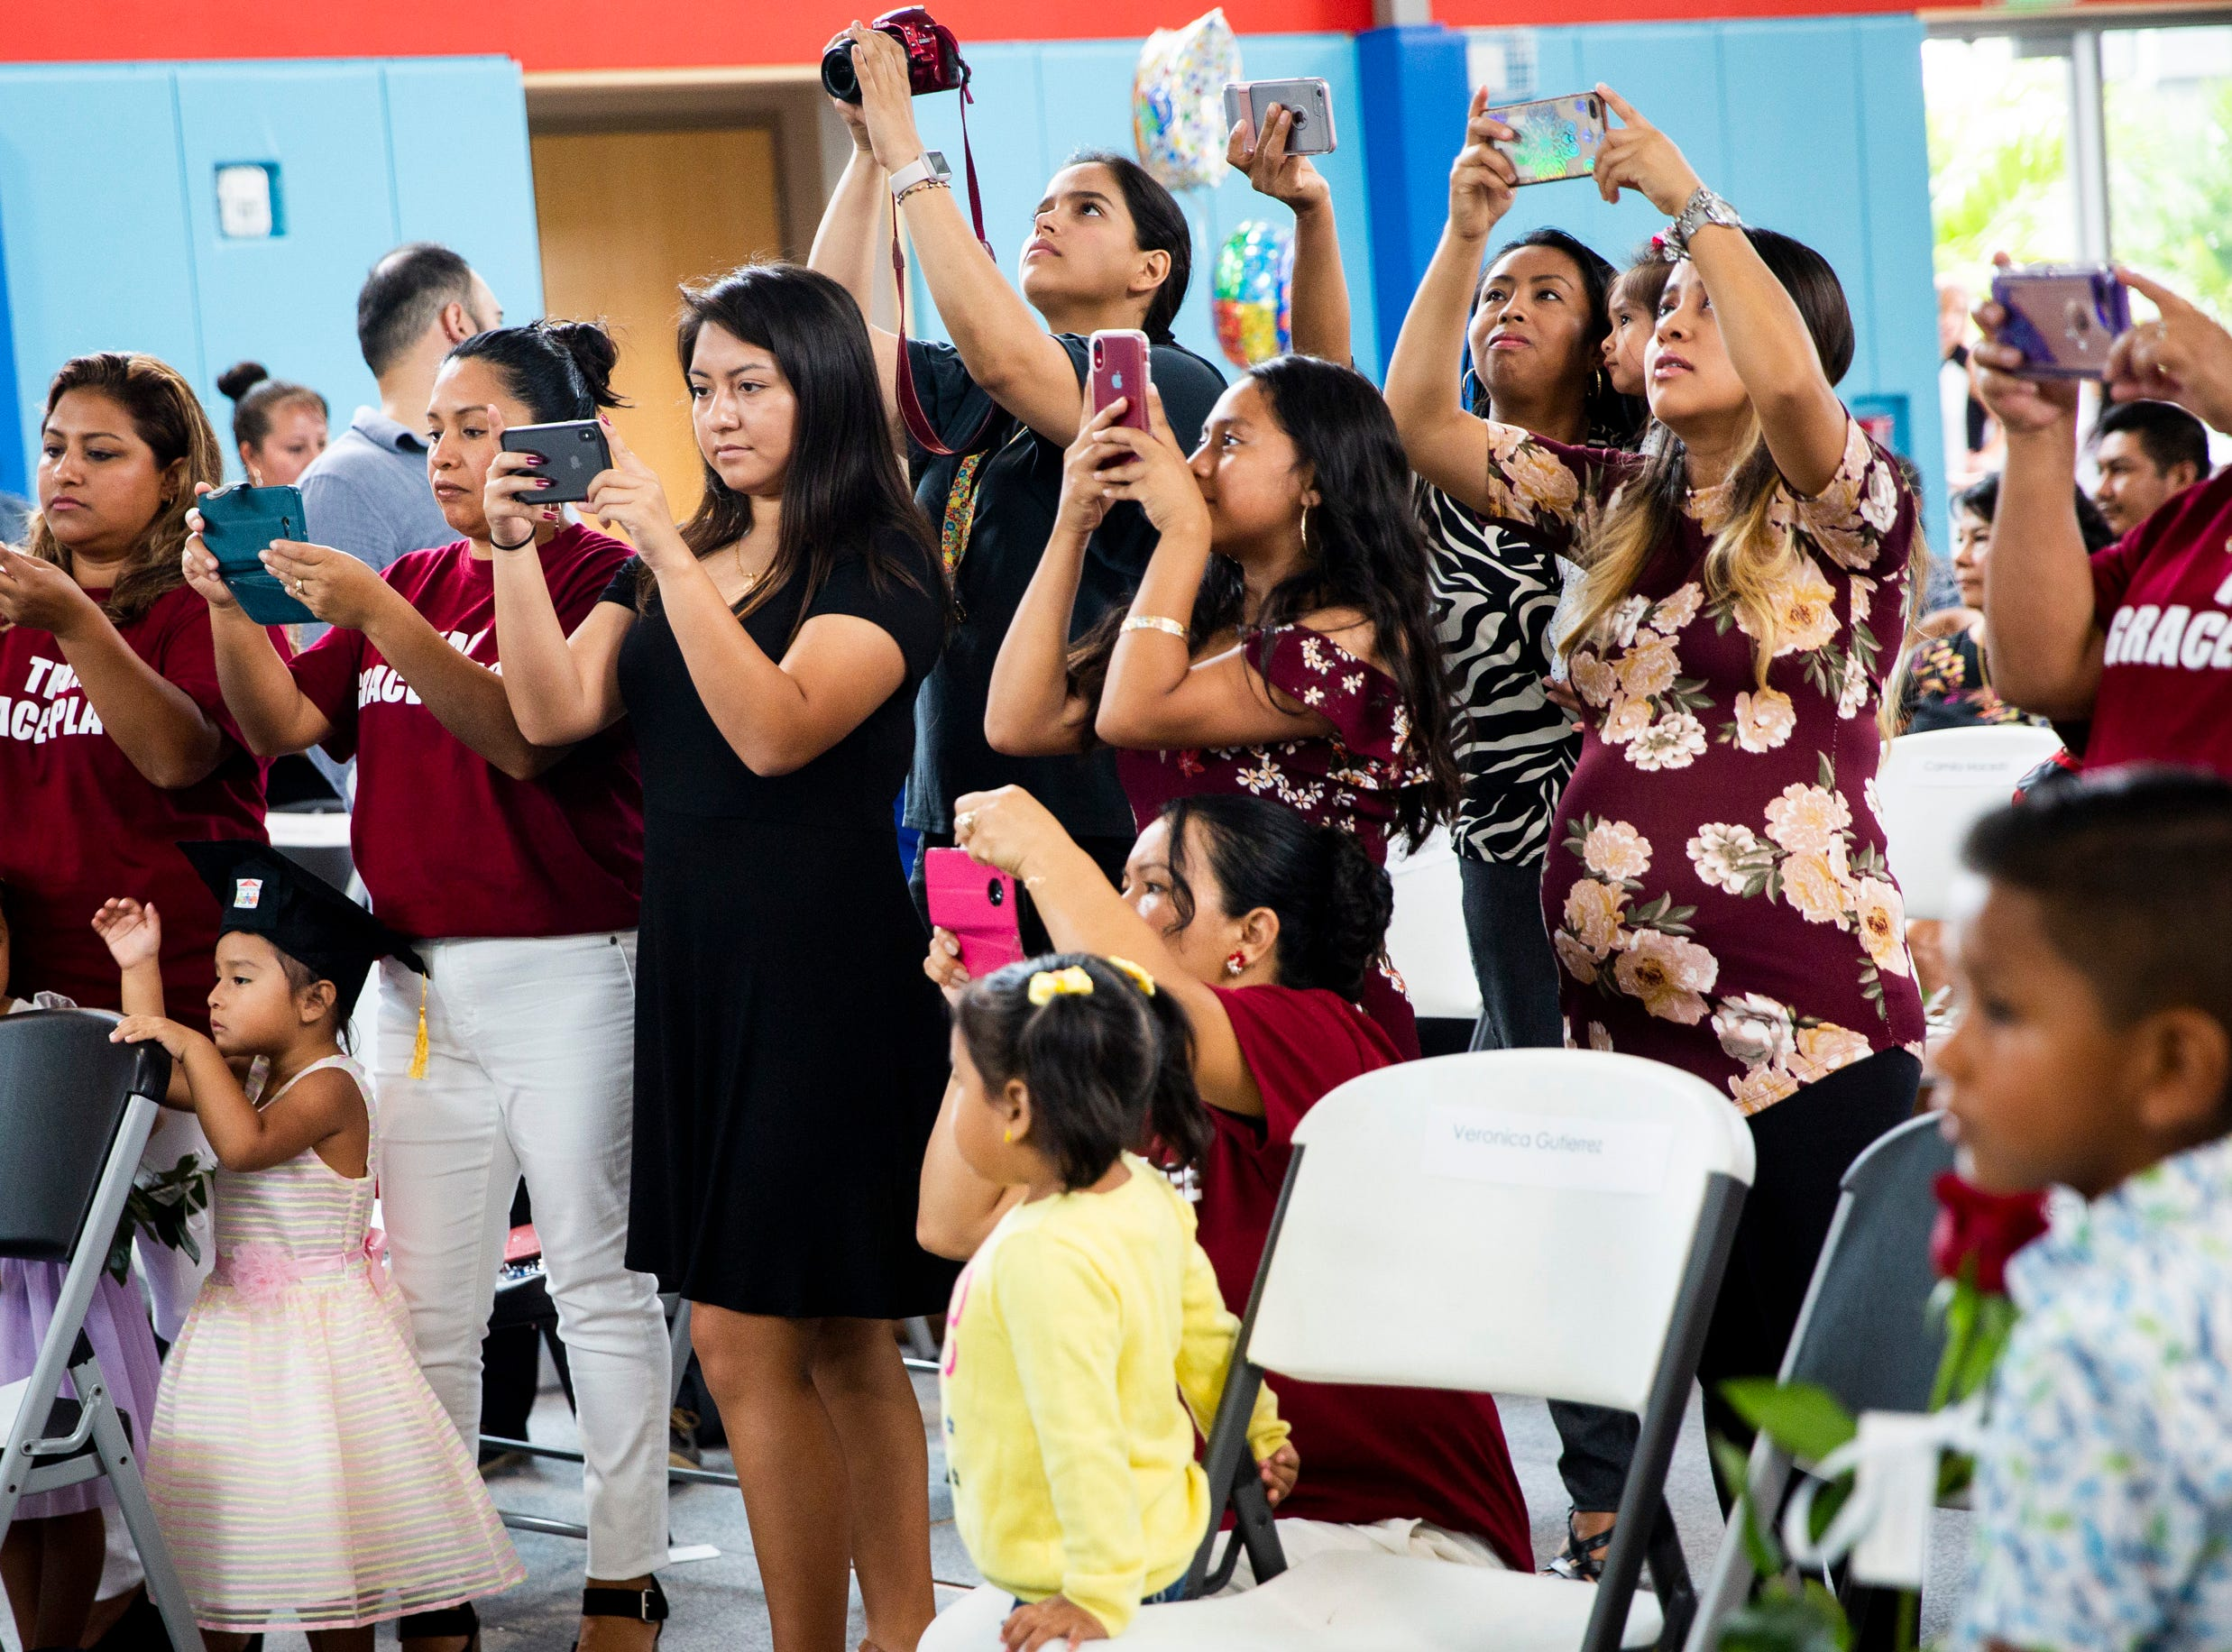 Women take photos of their friends and family during the Bright Beginnings family literacy program graduation at Grace Place in Golden Gate on Wednesday, May 15, 2019.